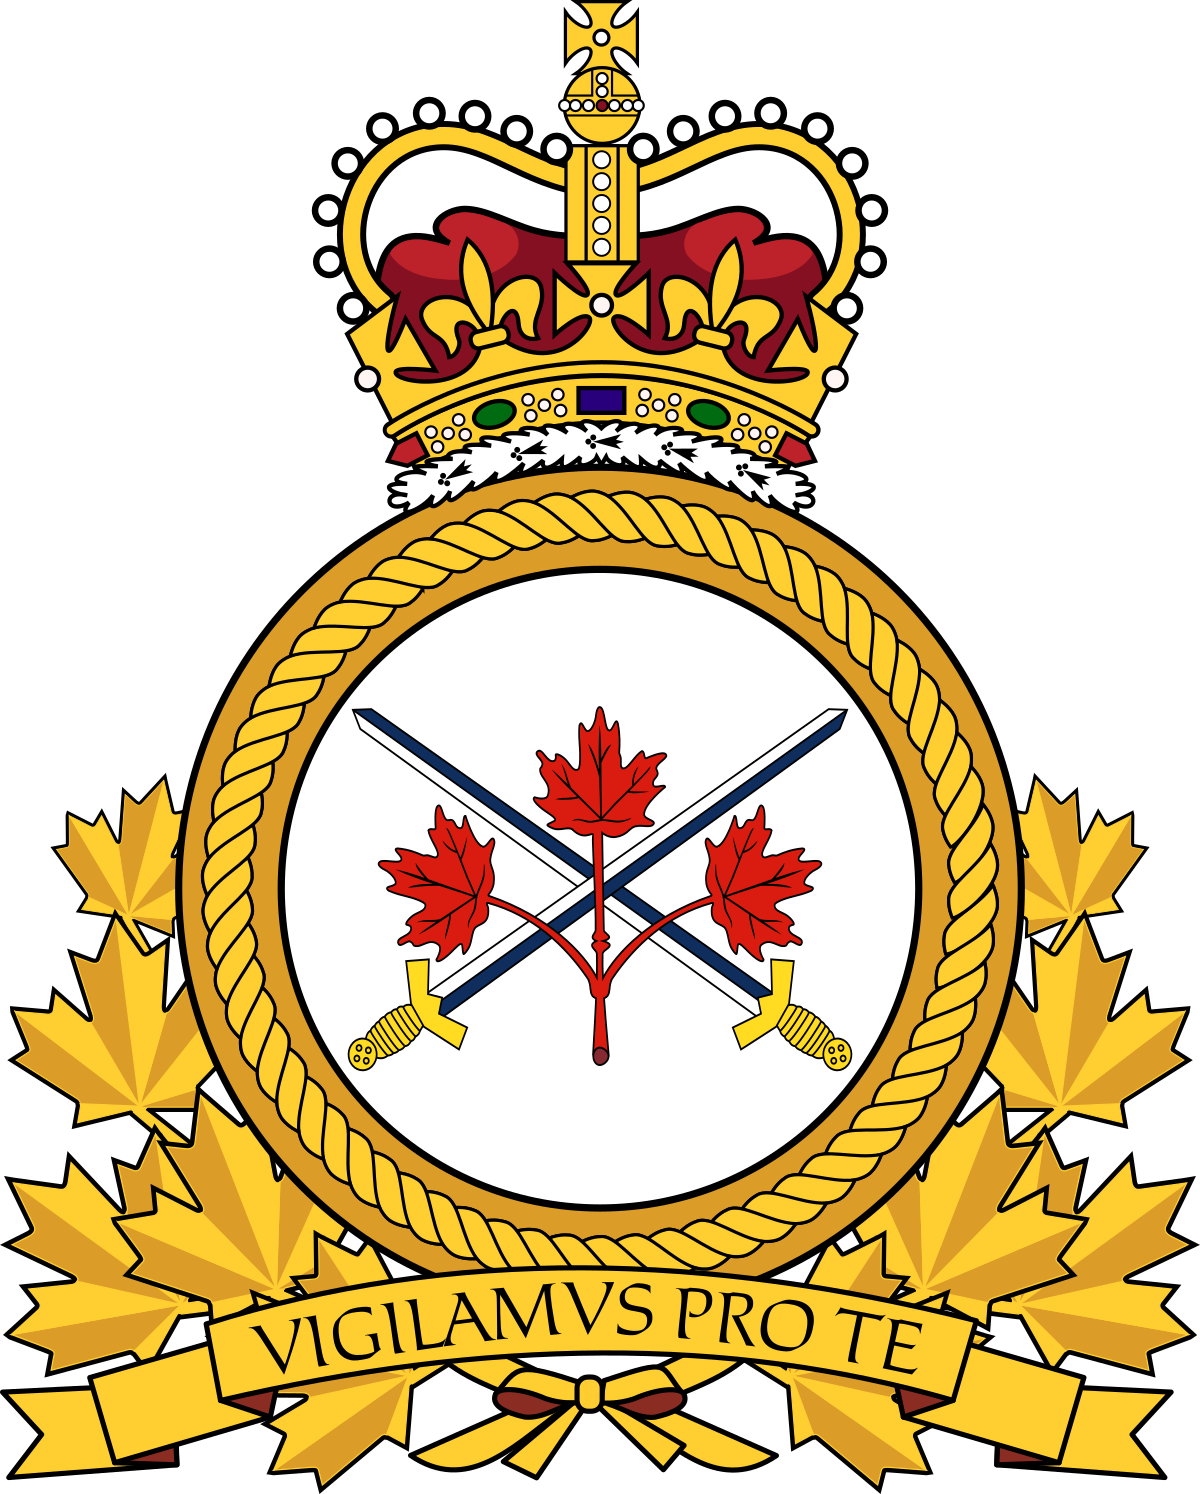 Princess patricias canadian light infentry airborne logo.